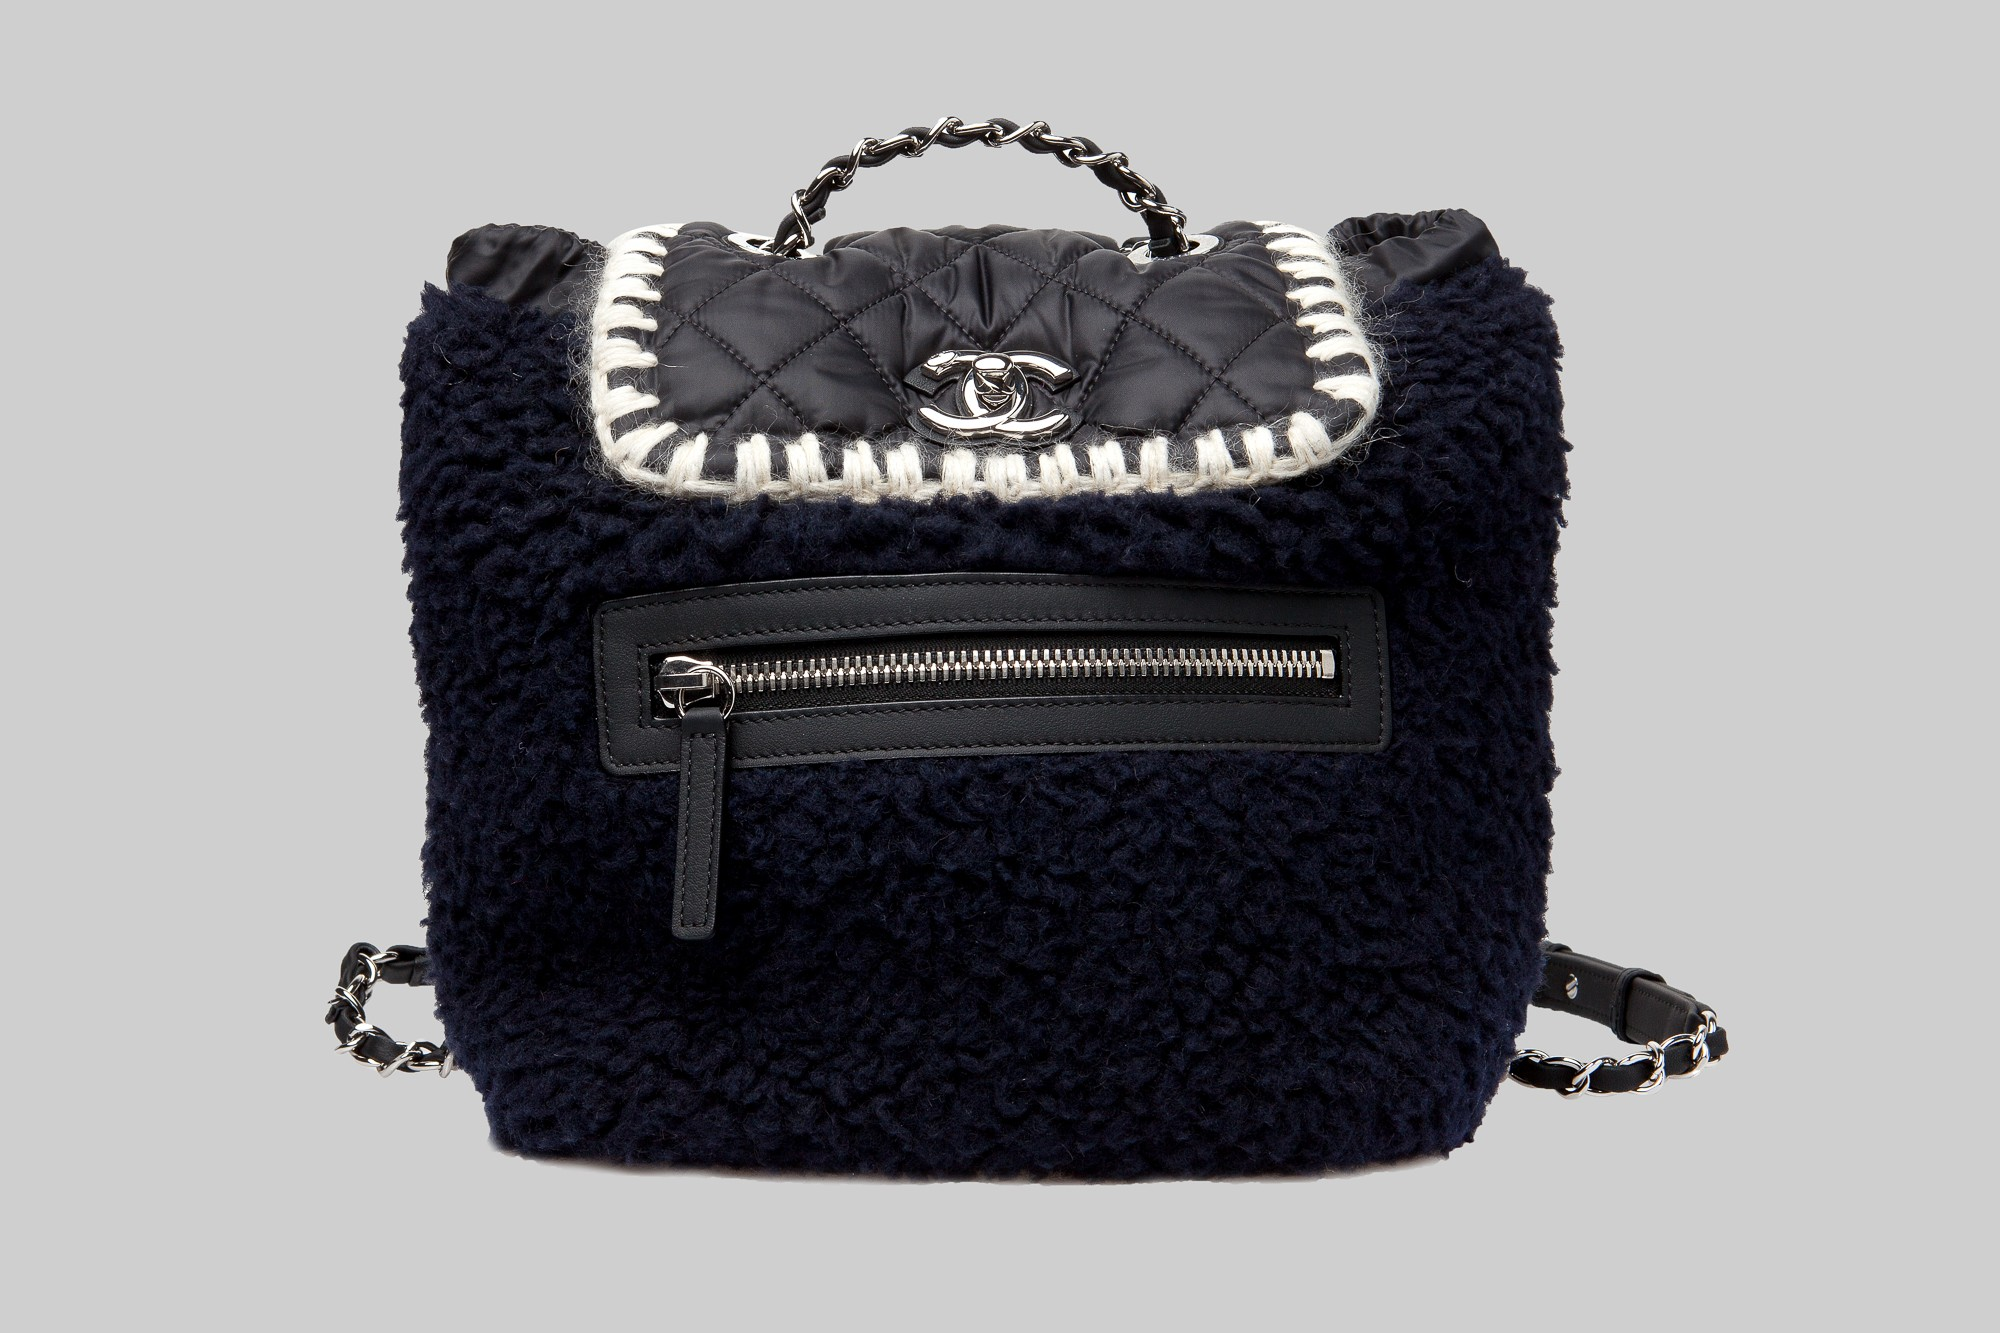 Black & navy backpack CHANEL LINEA PIU LUXURY ITEMS